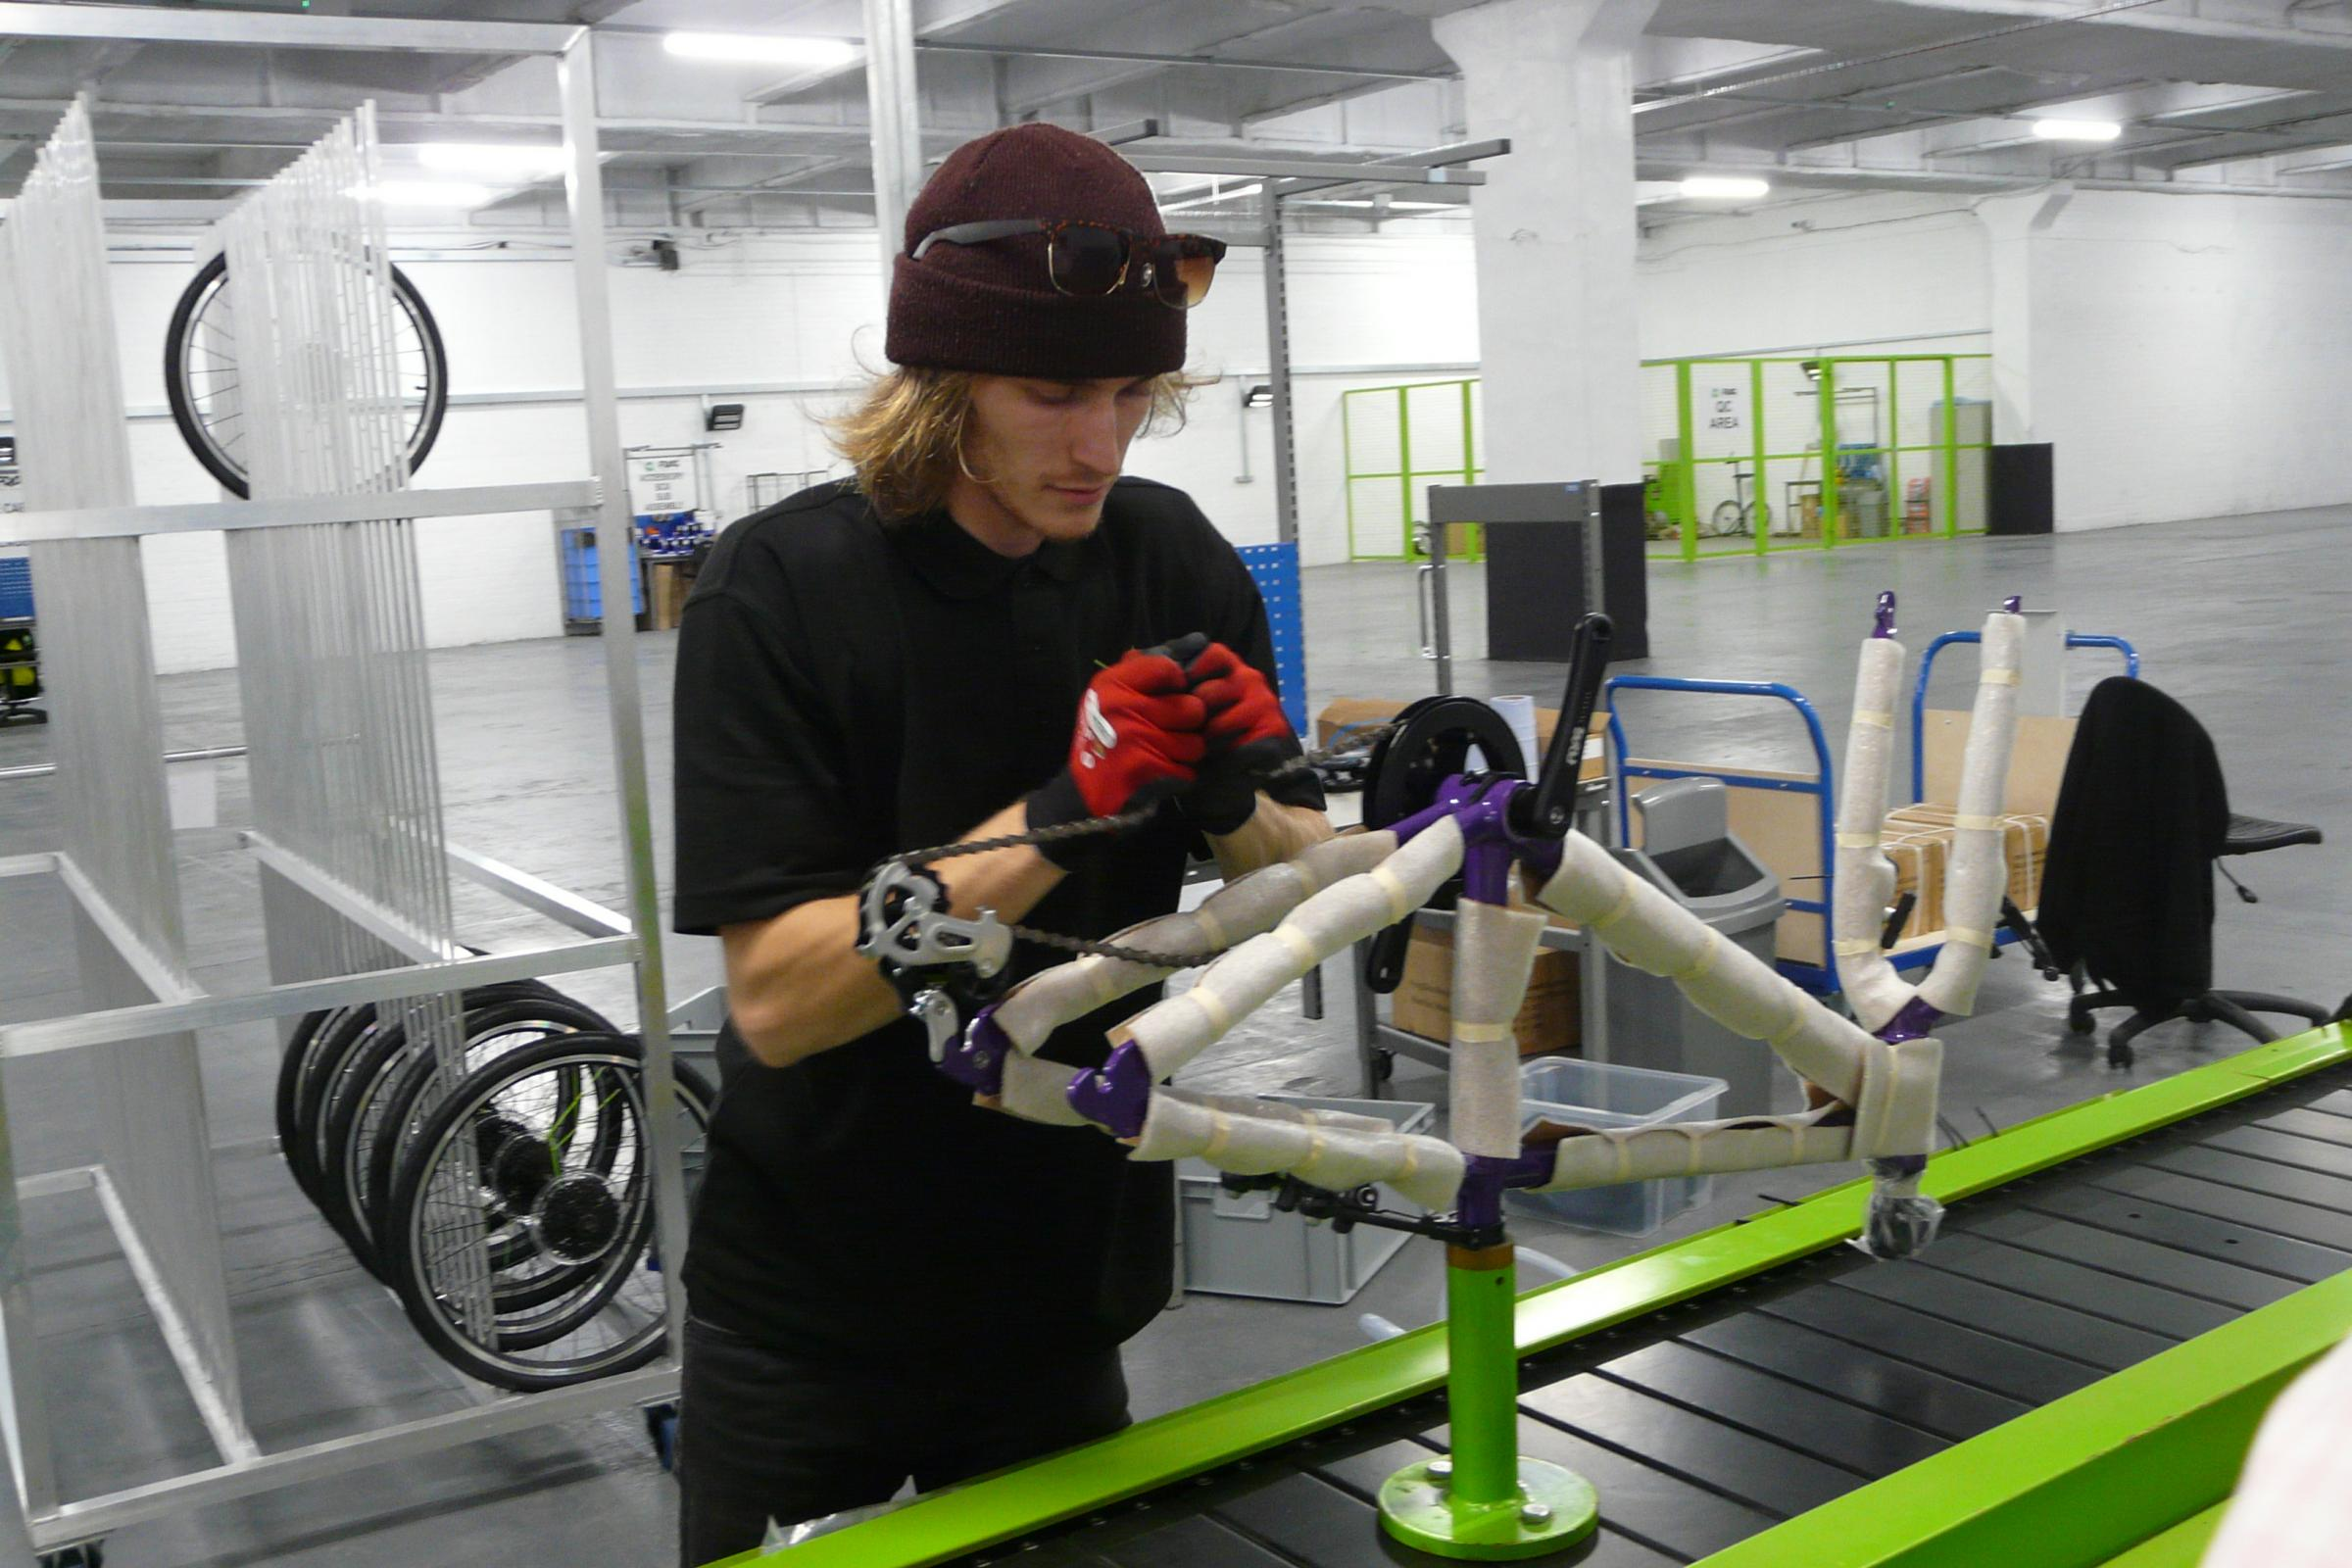 Frog Bikes' manufacturing facility at Mamhilad Park Estate, near Pontypool. Picture: DBPR